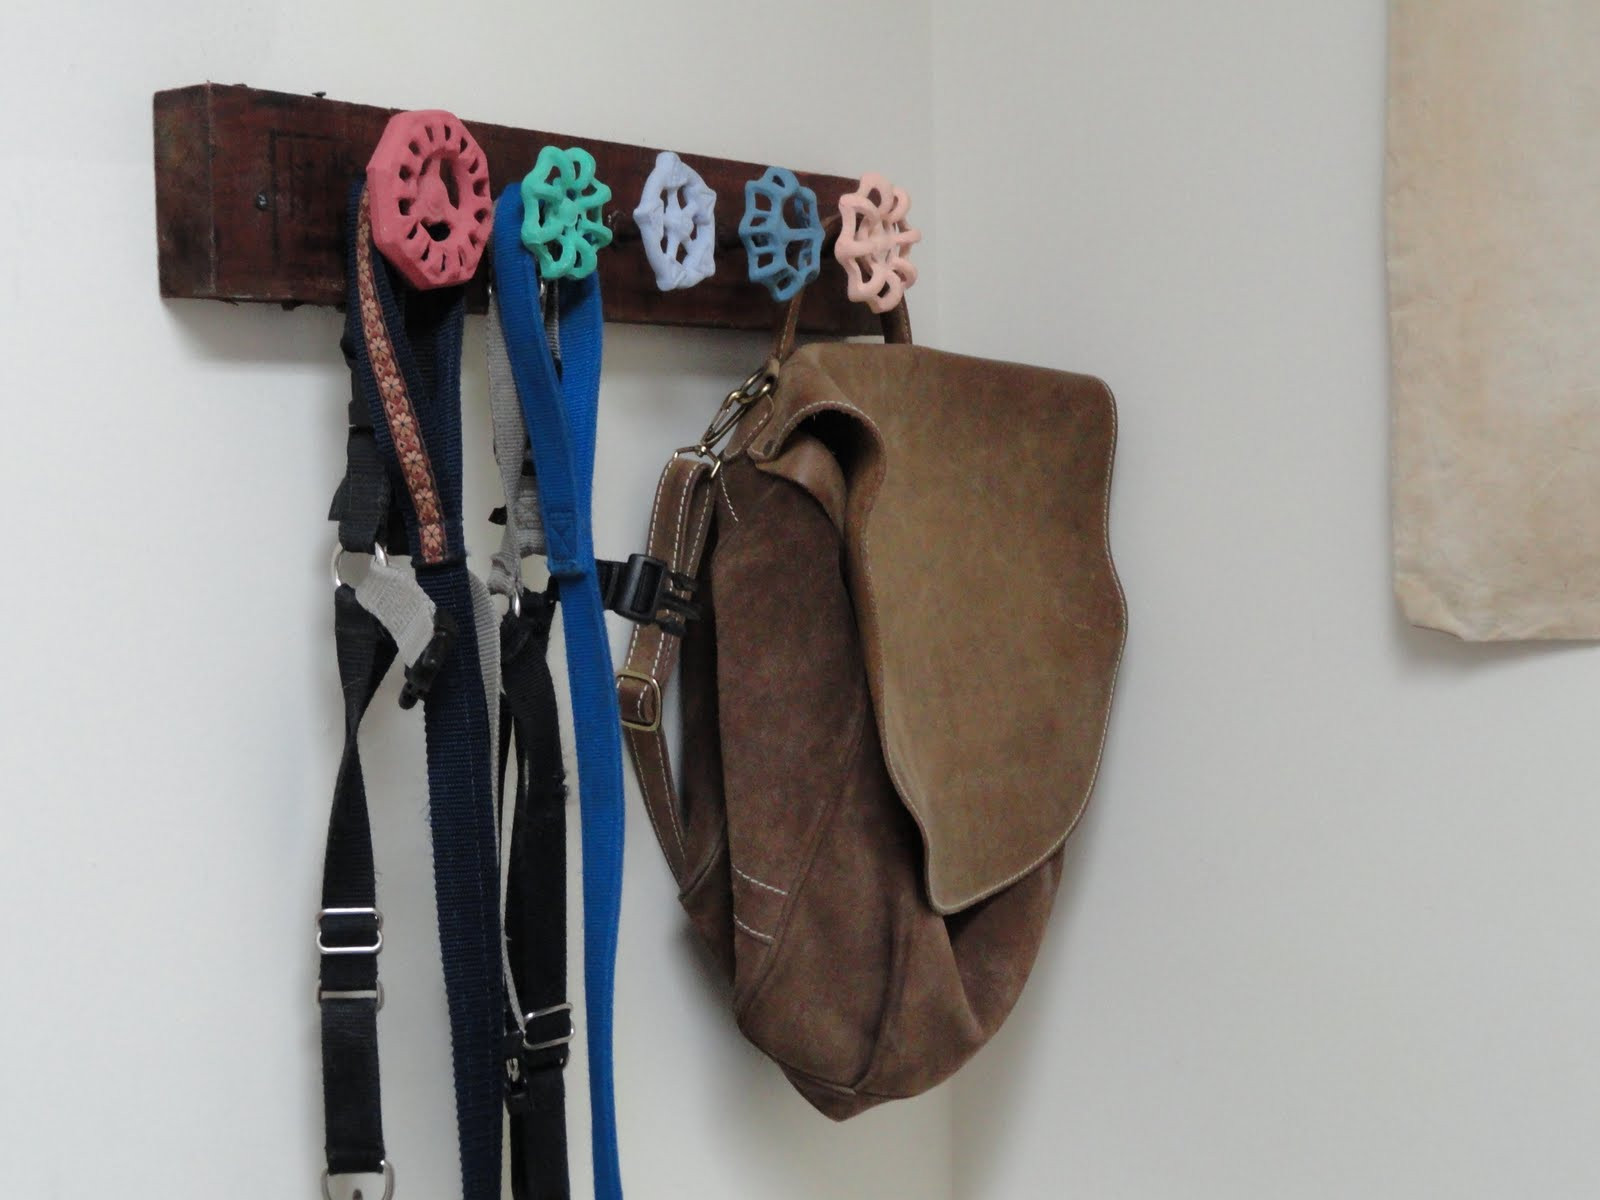 Best ideas about DIY Wall Hooks . Save or Pin 26 Useful DIY Wall Hook Ideas Now.